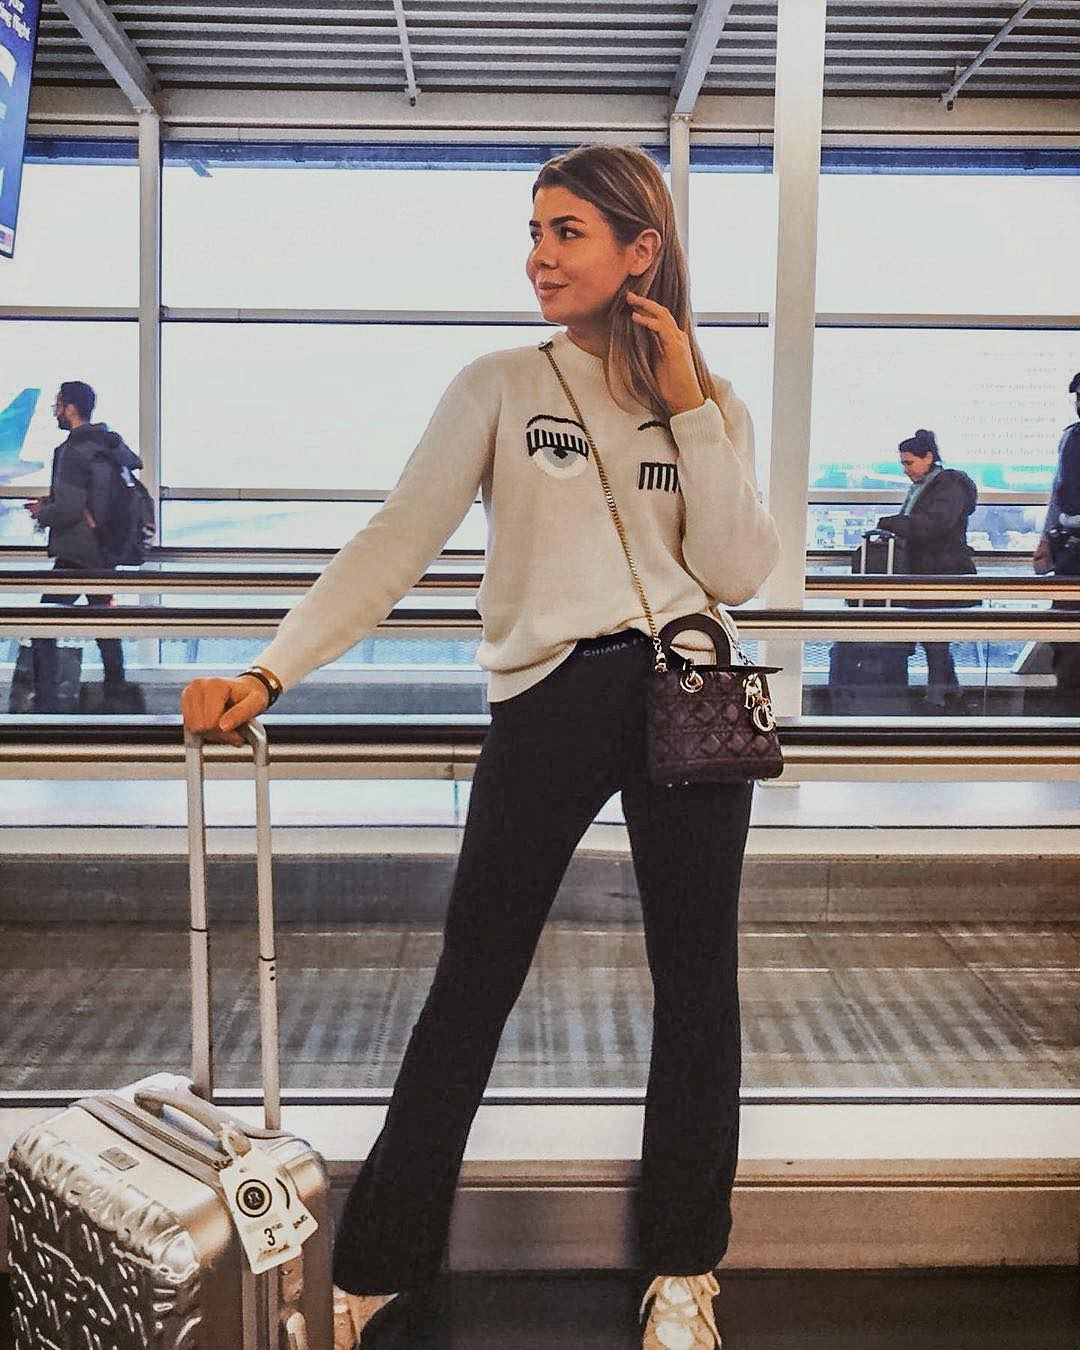 Airport Essentials: Cream Sweater, Black Joggers And Camel Sneakers 2019